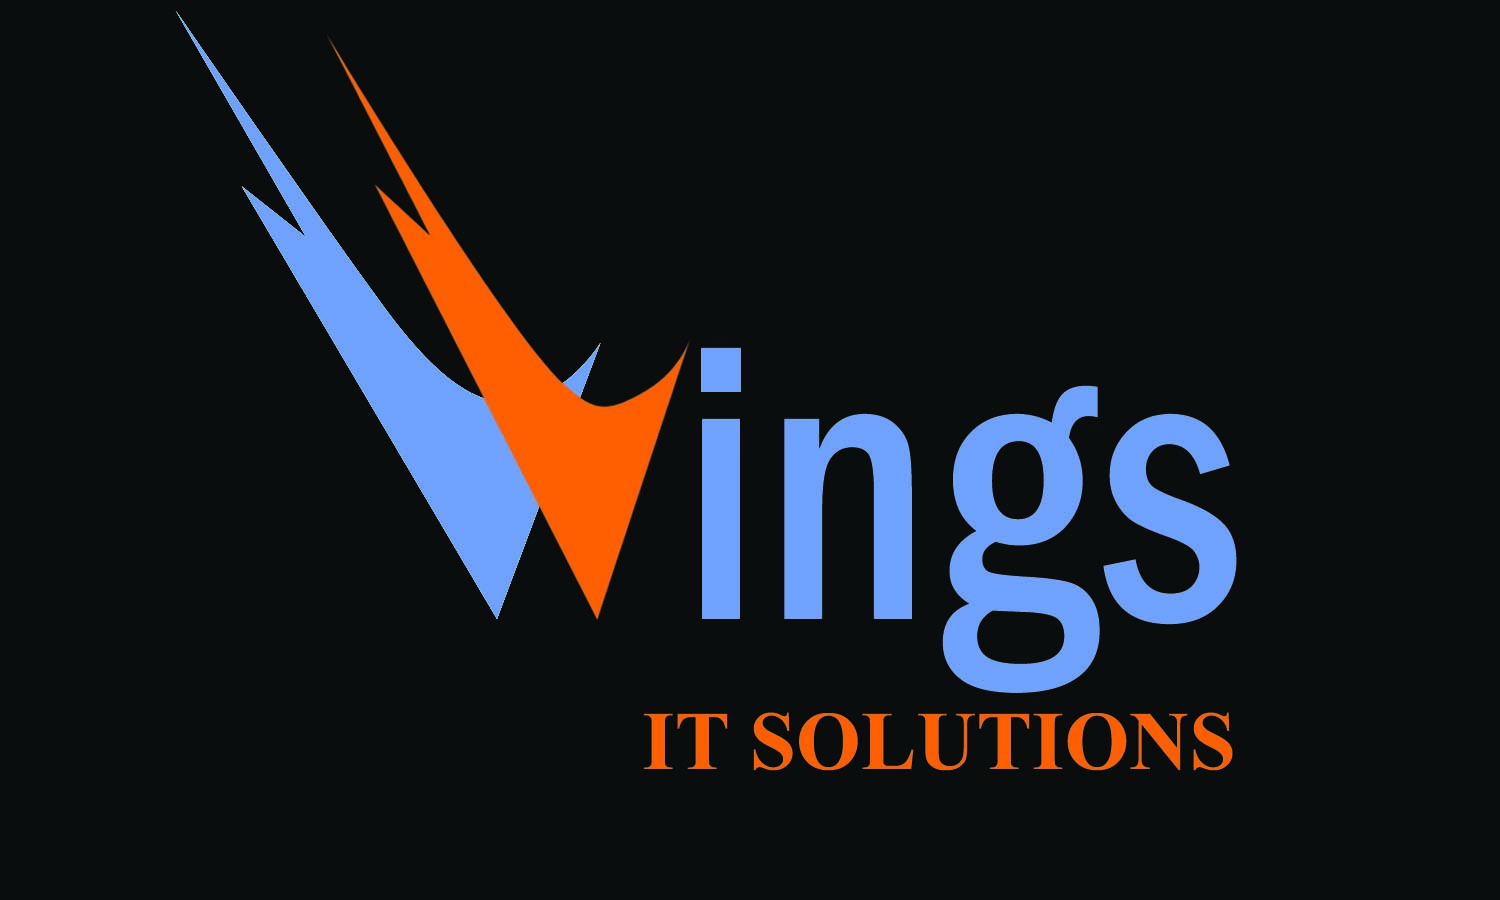 Wings IT Solutions Logo